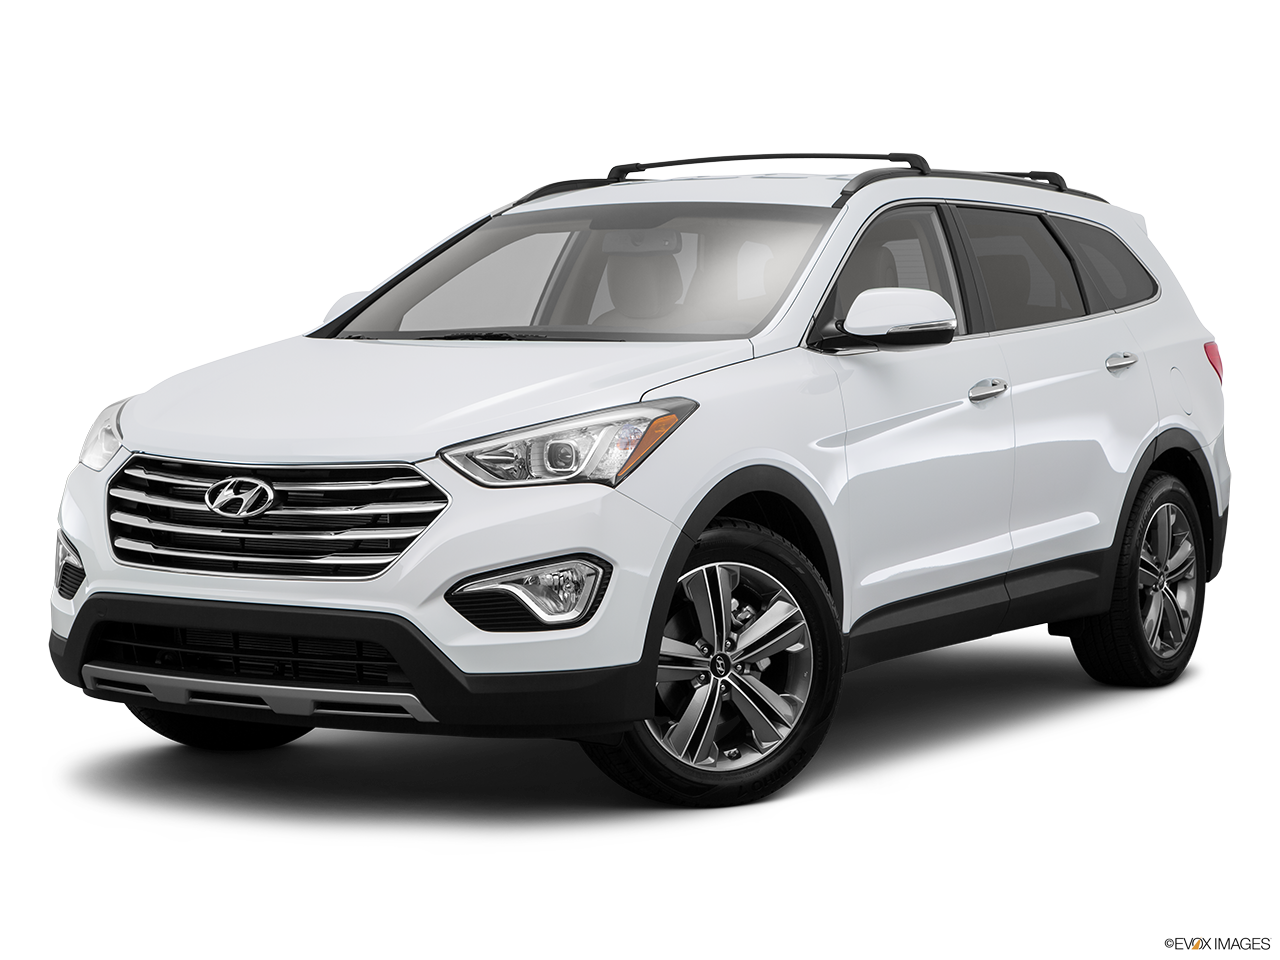 test drive a 2015 hyundai santa fe at gateway hyundai in chester. Black Bedroom Furniture Sets. Home Design Ideas